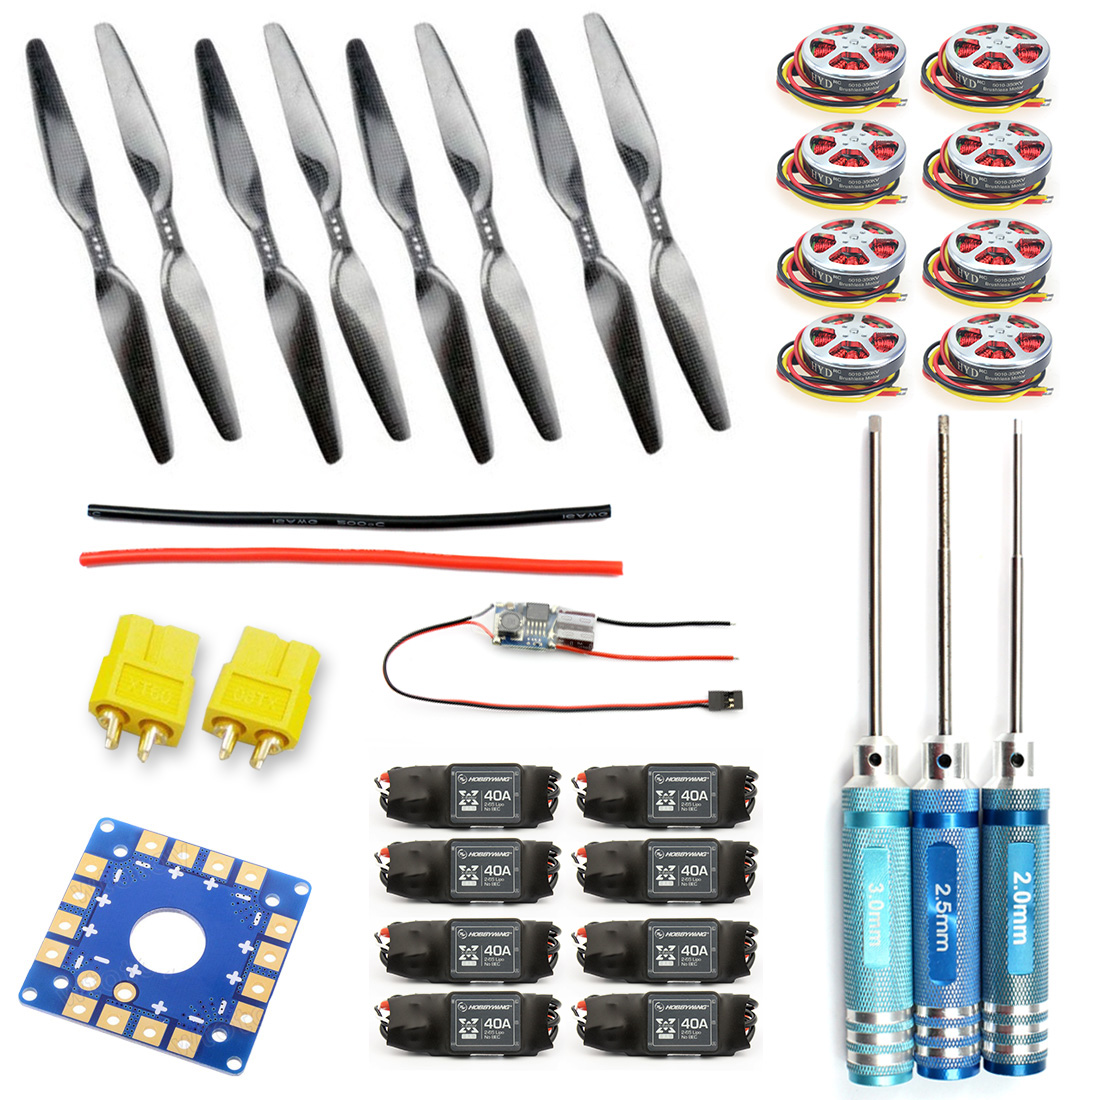 JMT Foldable Rack RC Helicopter Kit KK Connection Board+350KV Brushless Disk Motor+16x5.5 Propeller+40A ESC F05423-D f02015 f 6 axis foldable rack rc quadcopter kit with kk v2 3 circuit board 1000kv brushless motor 10x4 7 propeller 30a esc